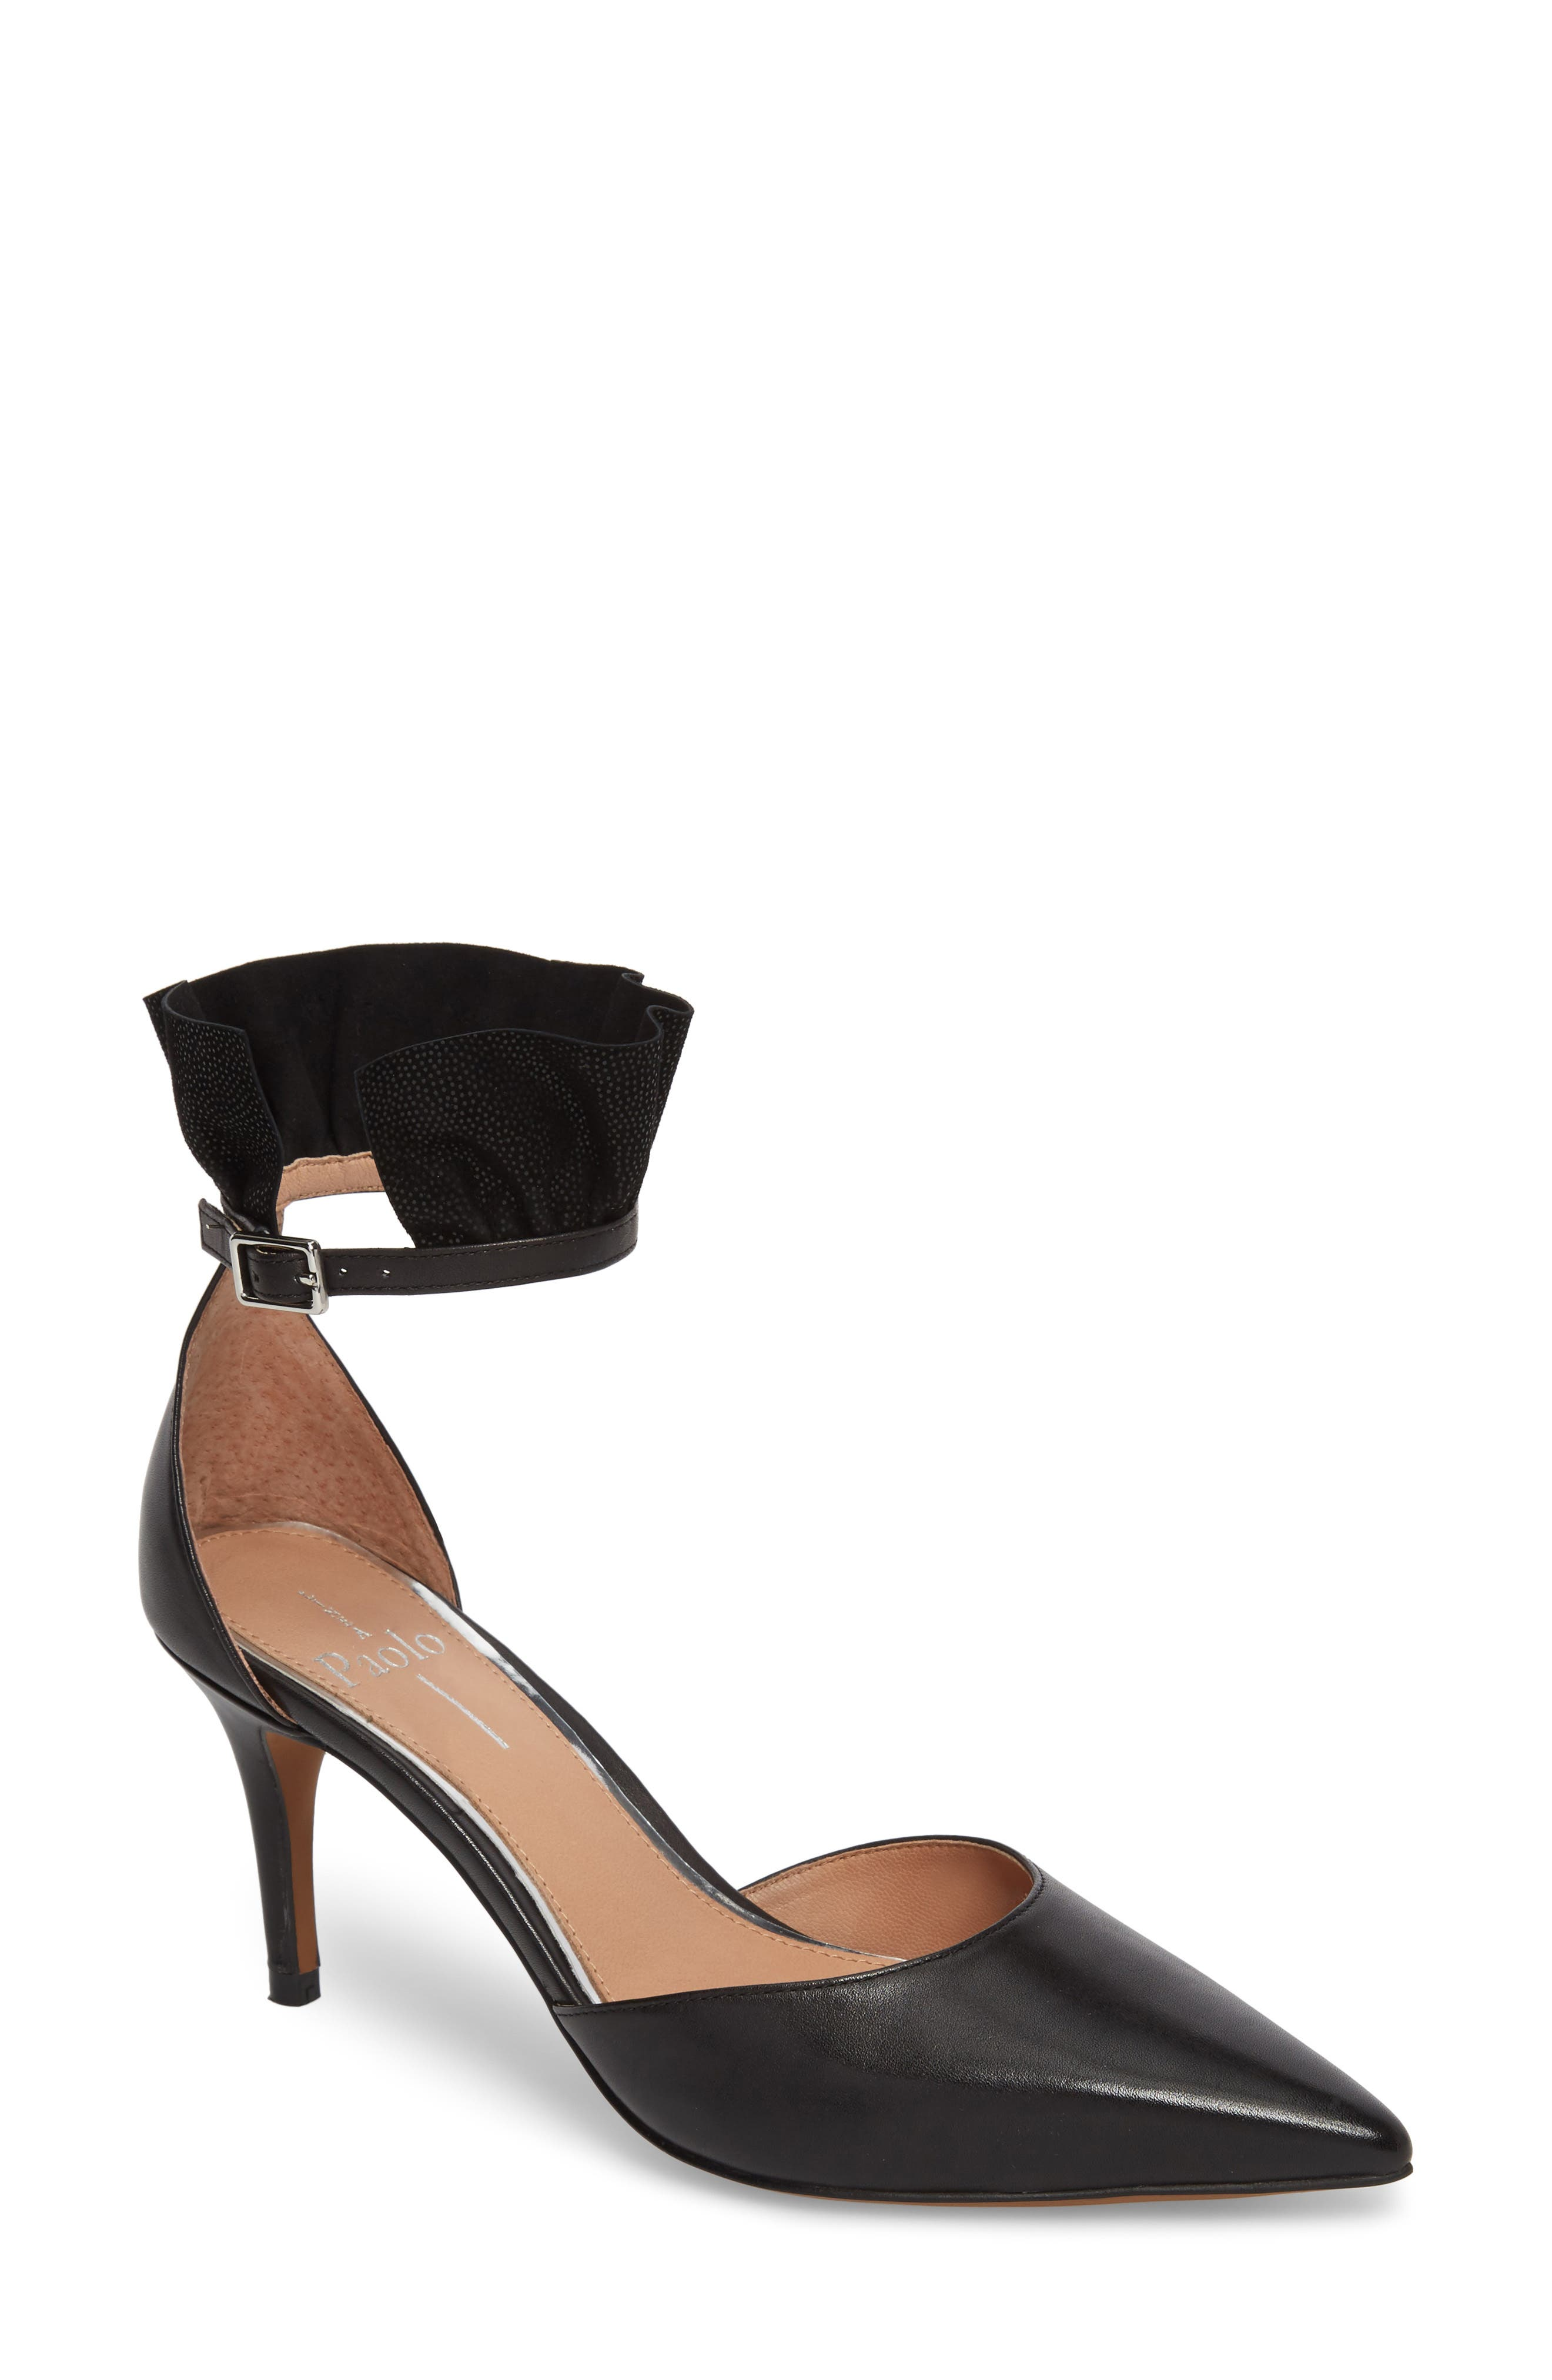 Pammy Ruffled Pointy Toe Pump,                         Main,                         color,